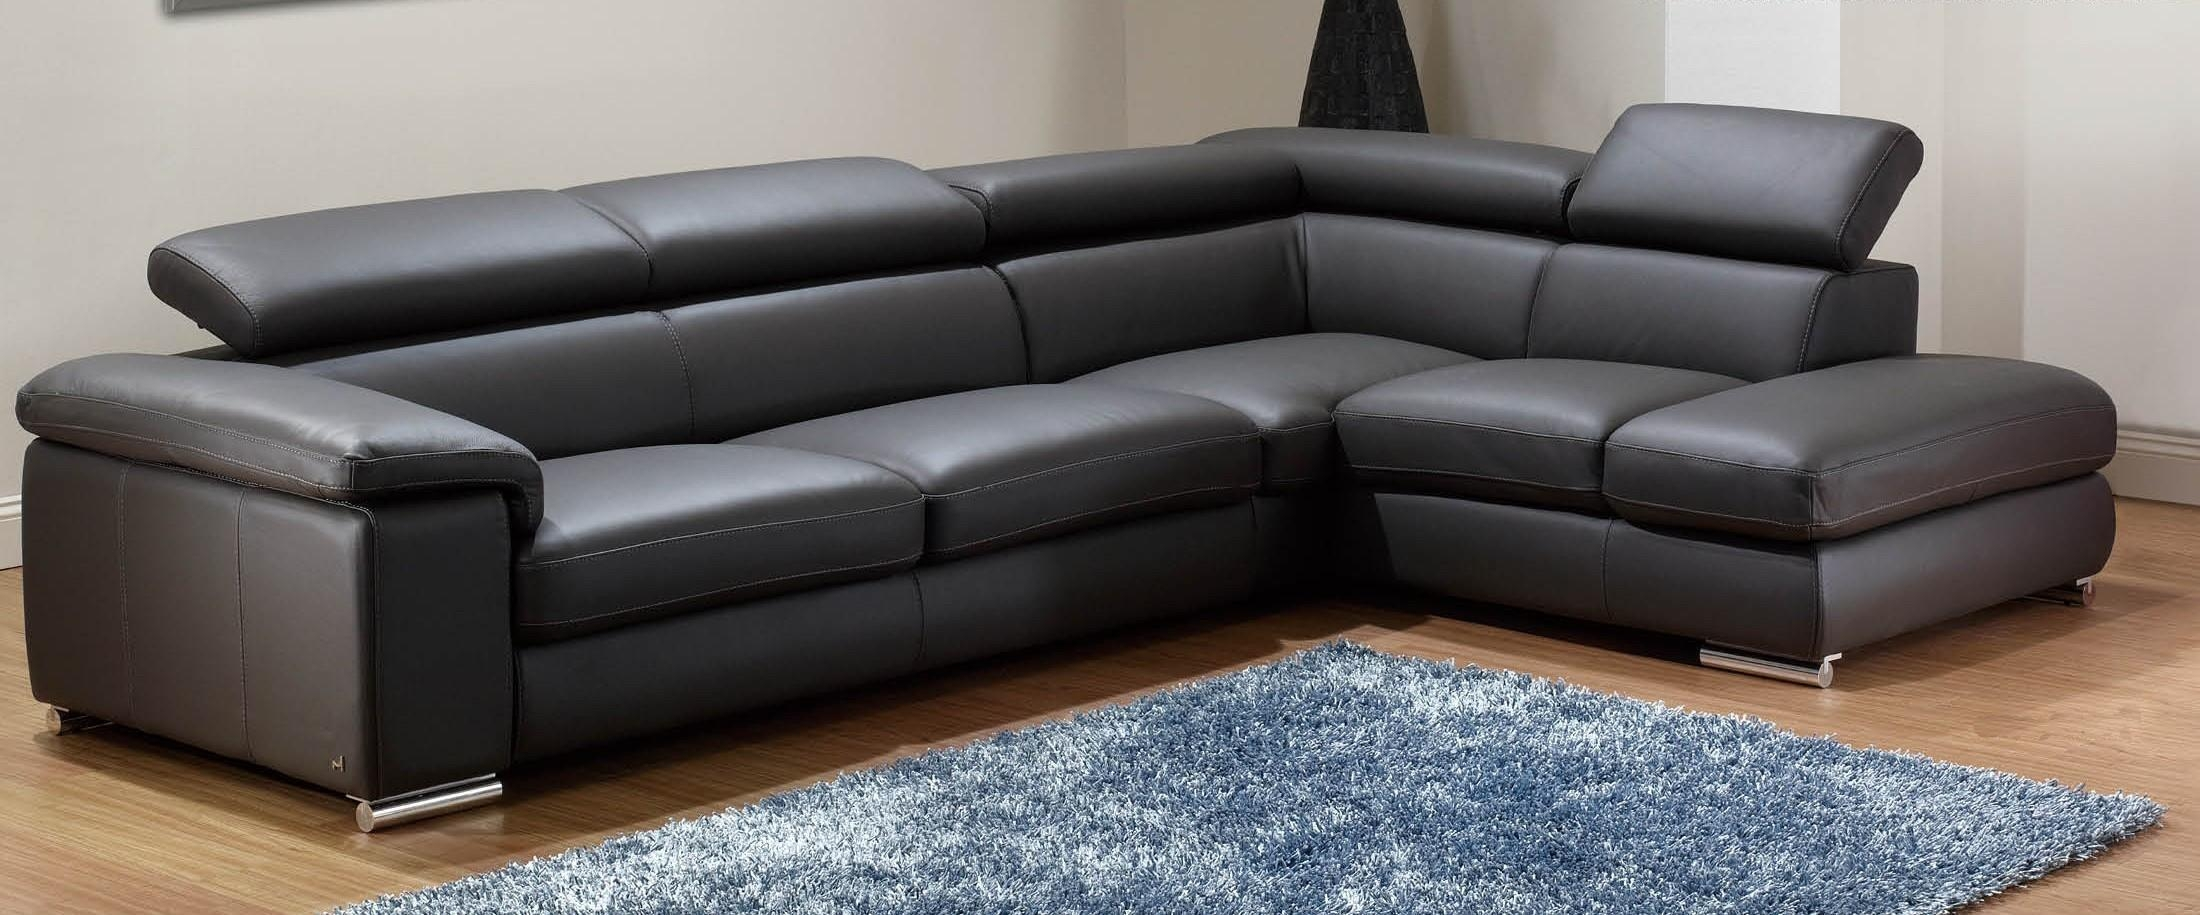 Furniture Home: Morpheus Reversible Sectional Design Modern 2017 Inside Black Modern Couches (Image 10 of 20)